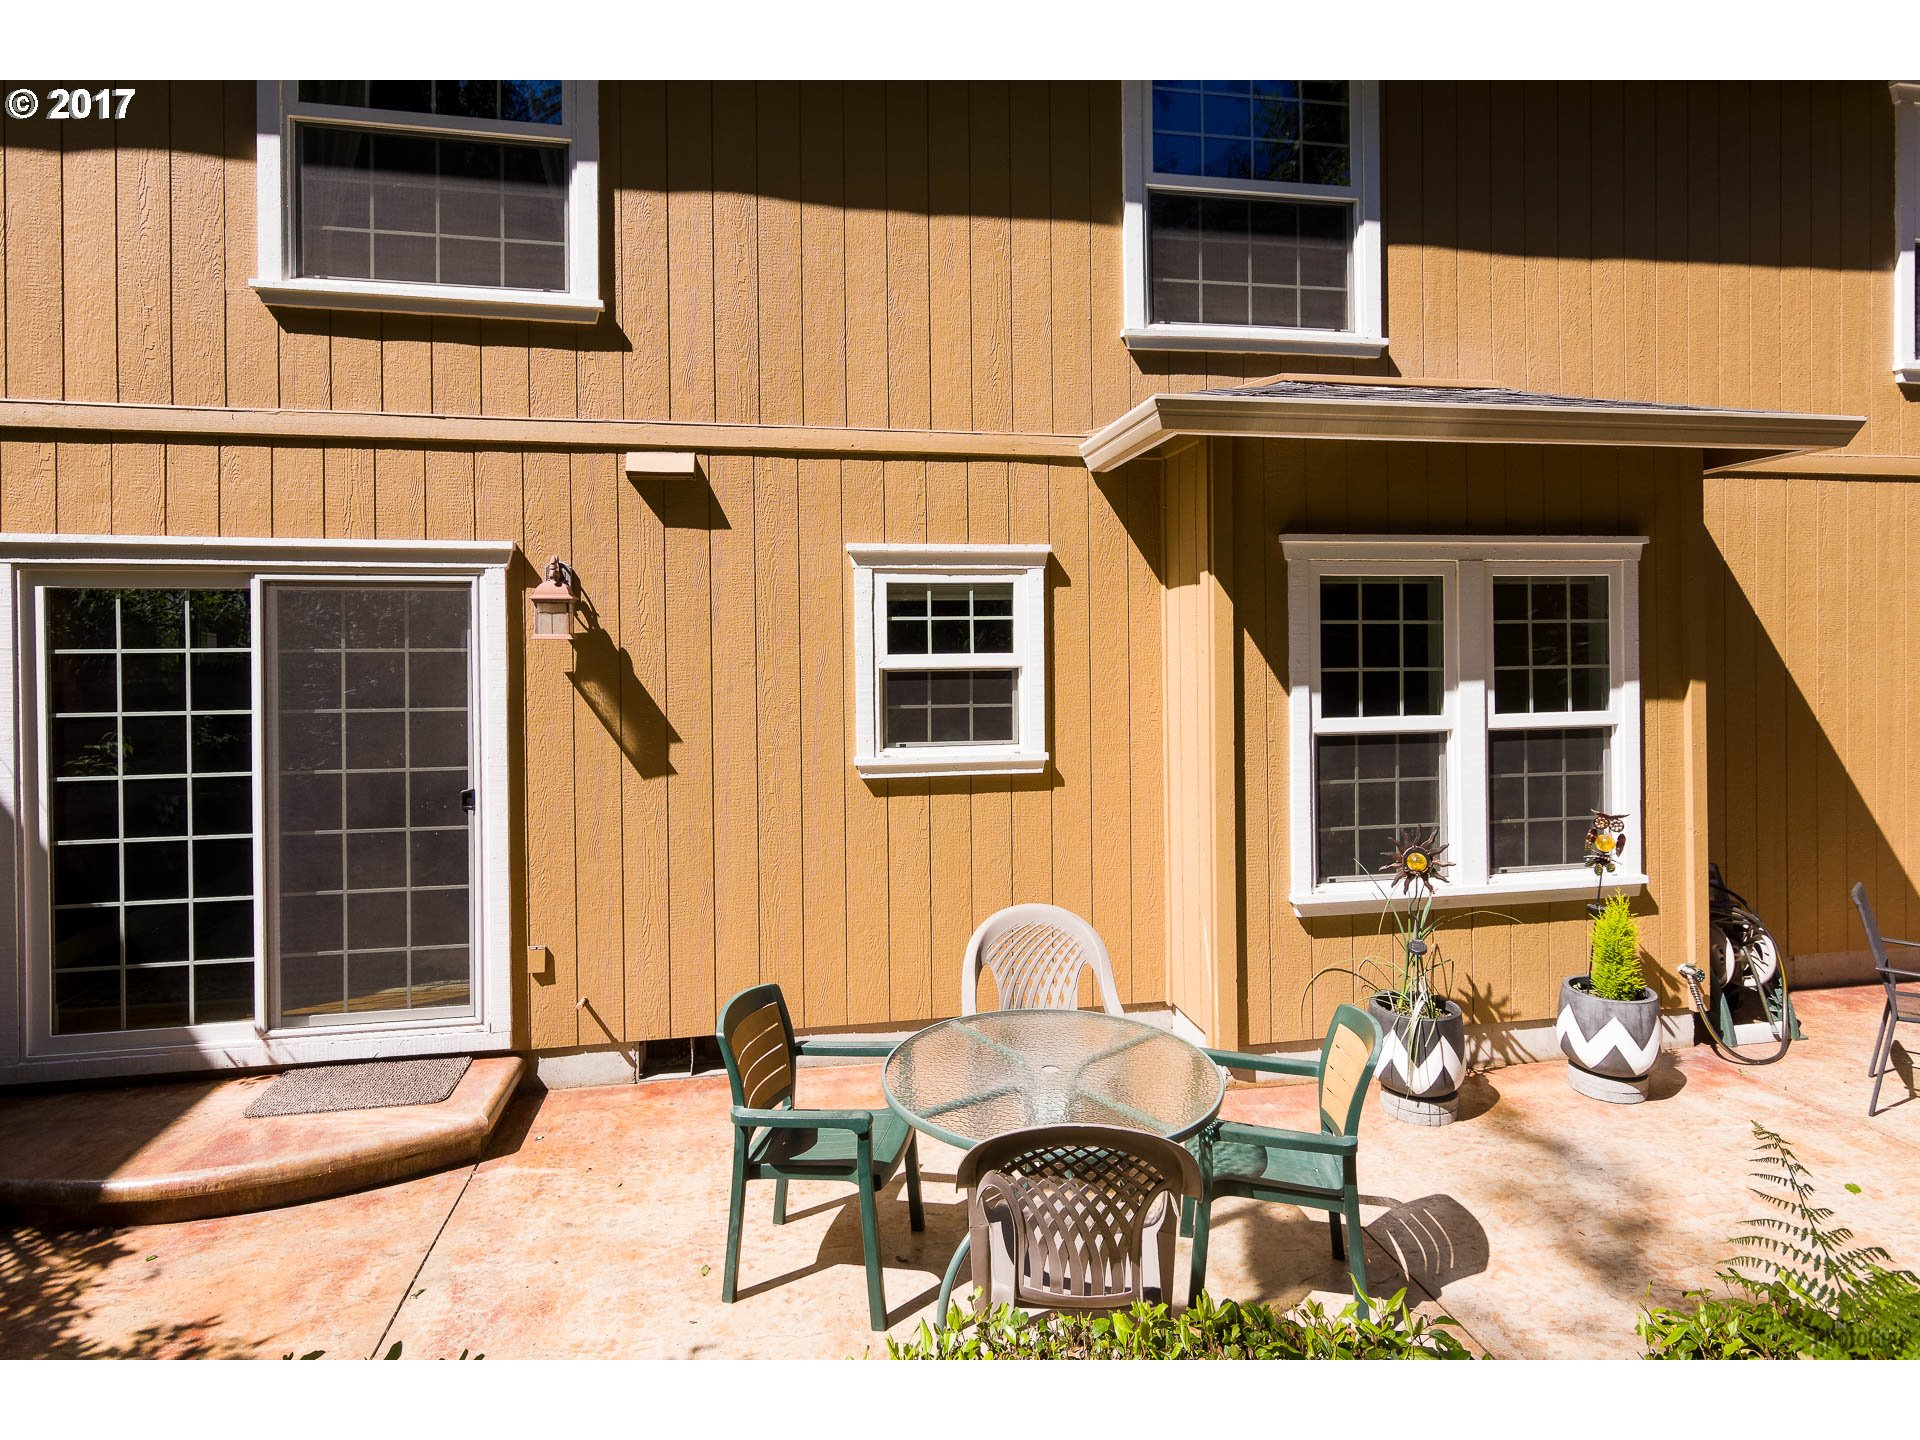 6935 IVY ST Springfield, OR 97478 - MLS #: 17590227